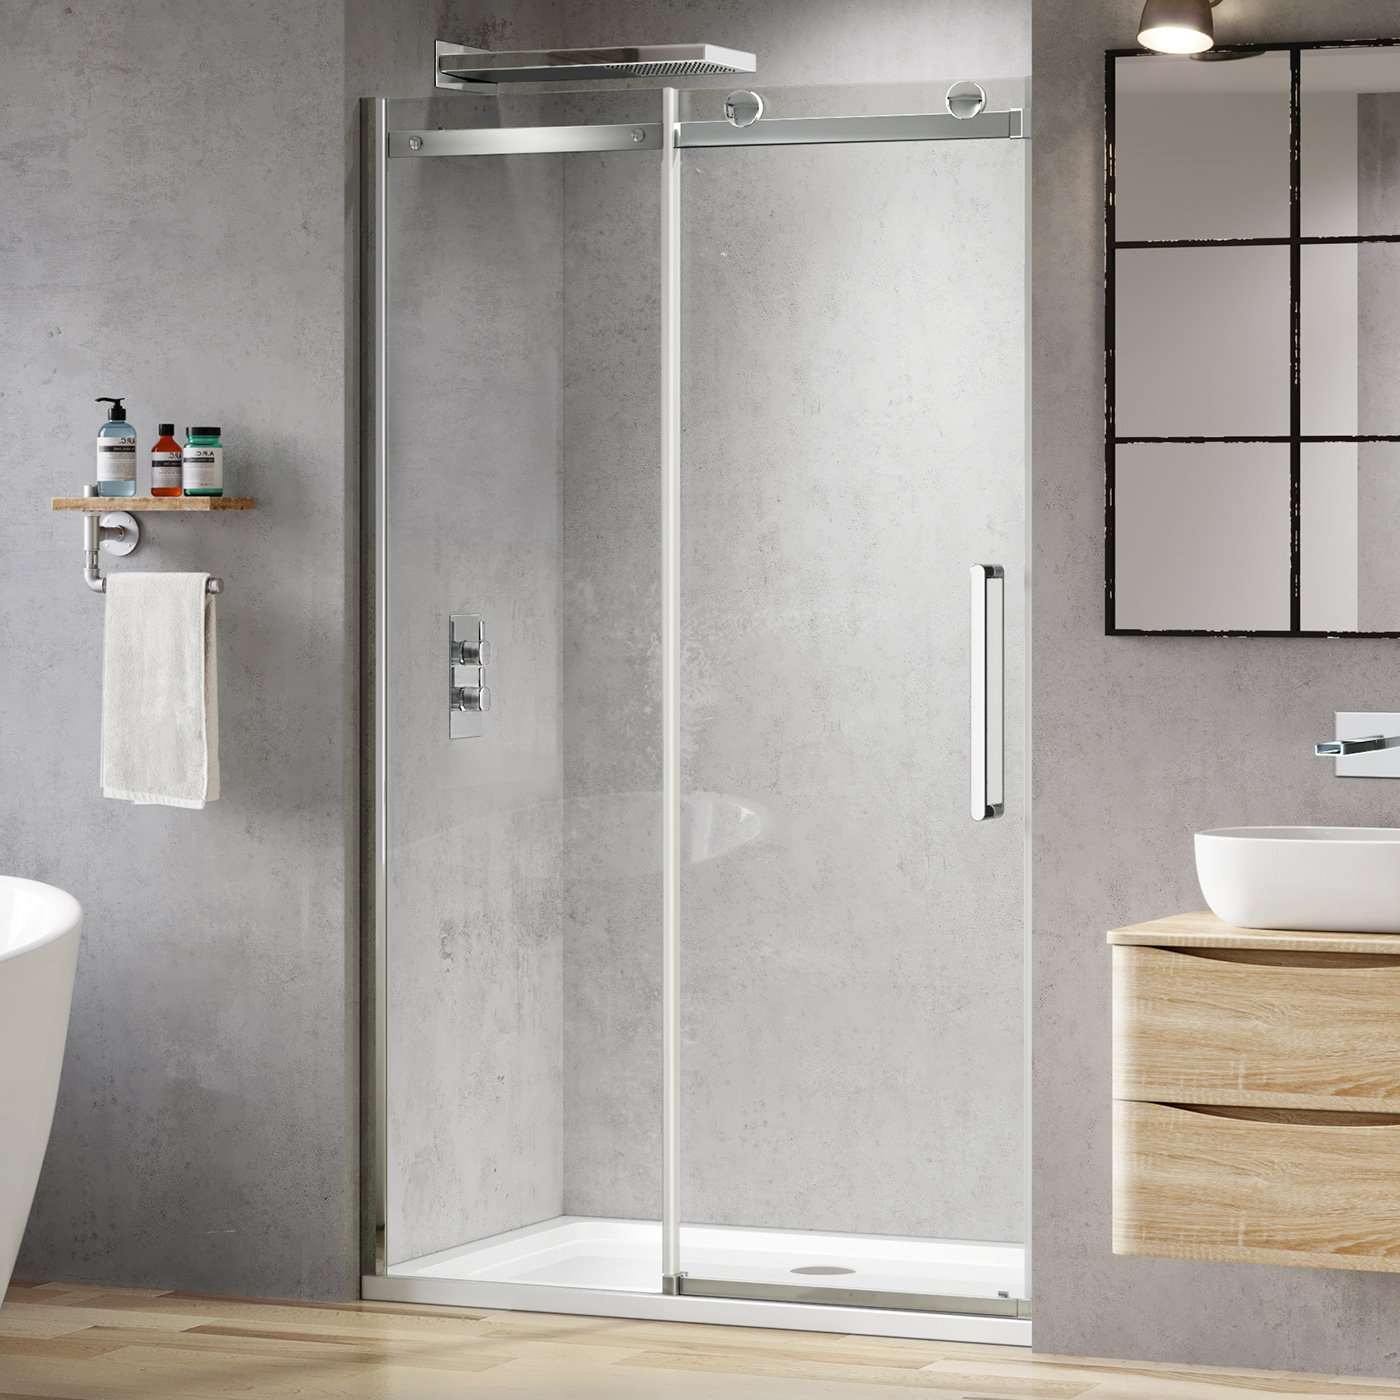 iBathUK 1200 mm Luxury Frameless 8mm Sliding Easy Clean Glass Shower Enclosure Cubicle Door